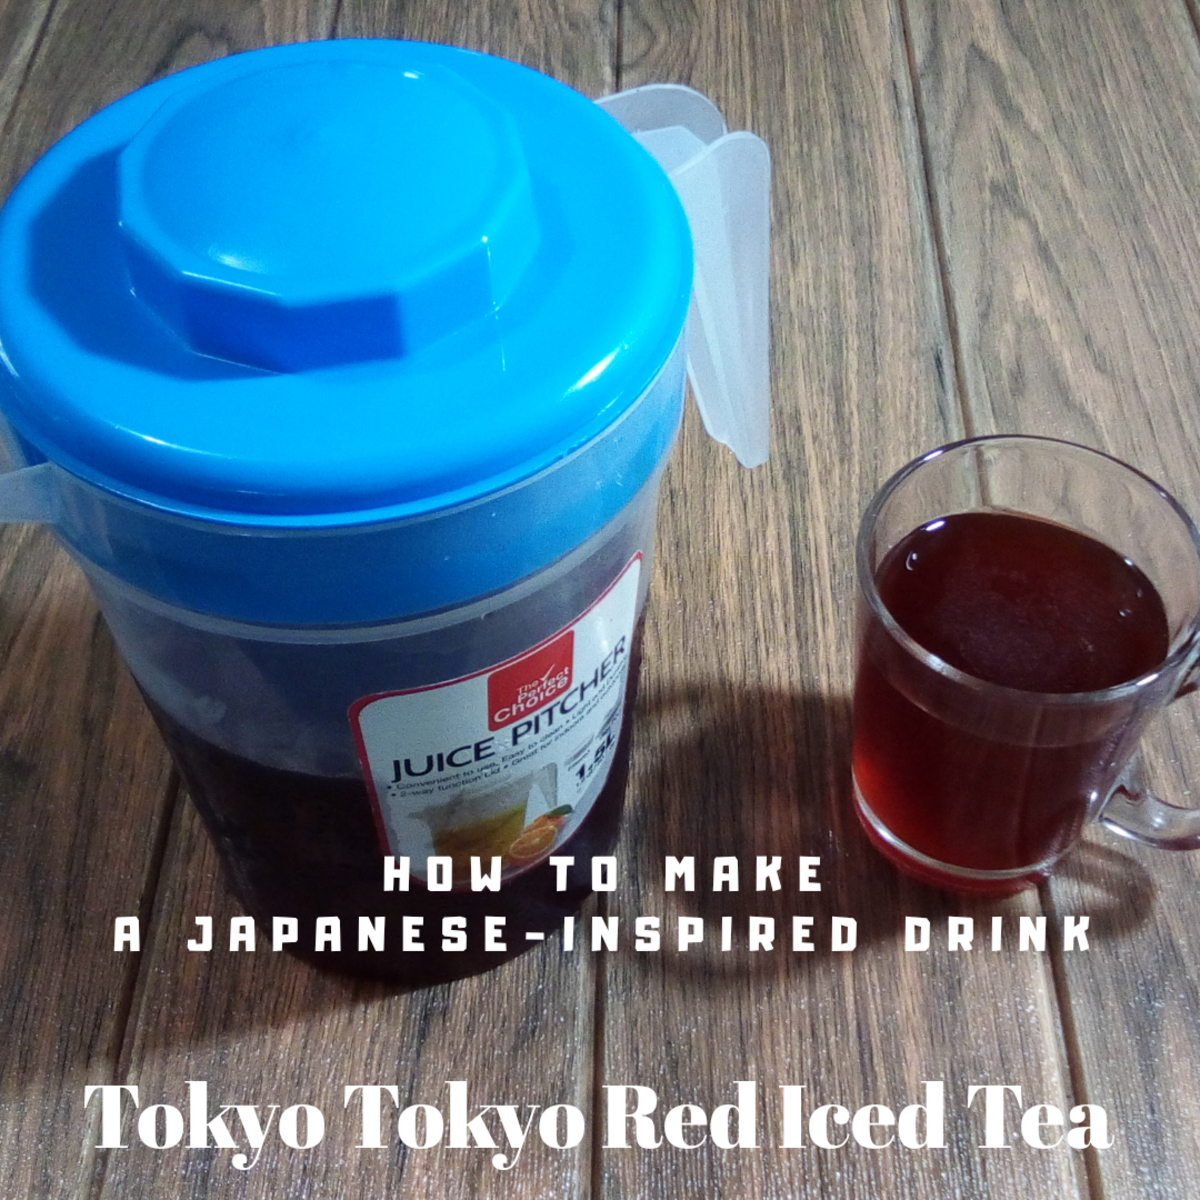 Learn how to make copycat Tokyo Tokyo red iced tea!